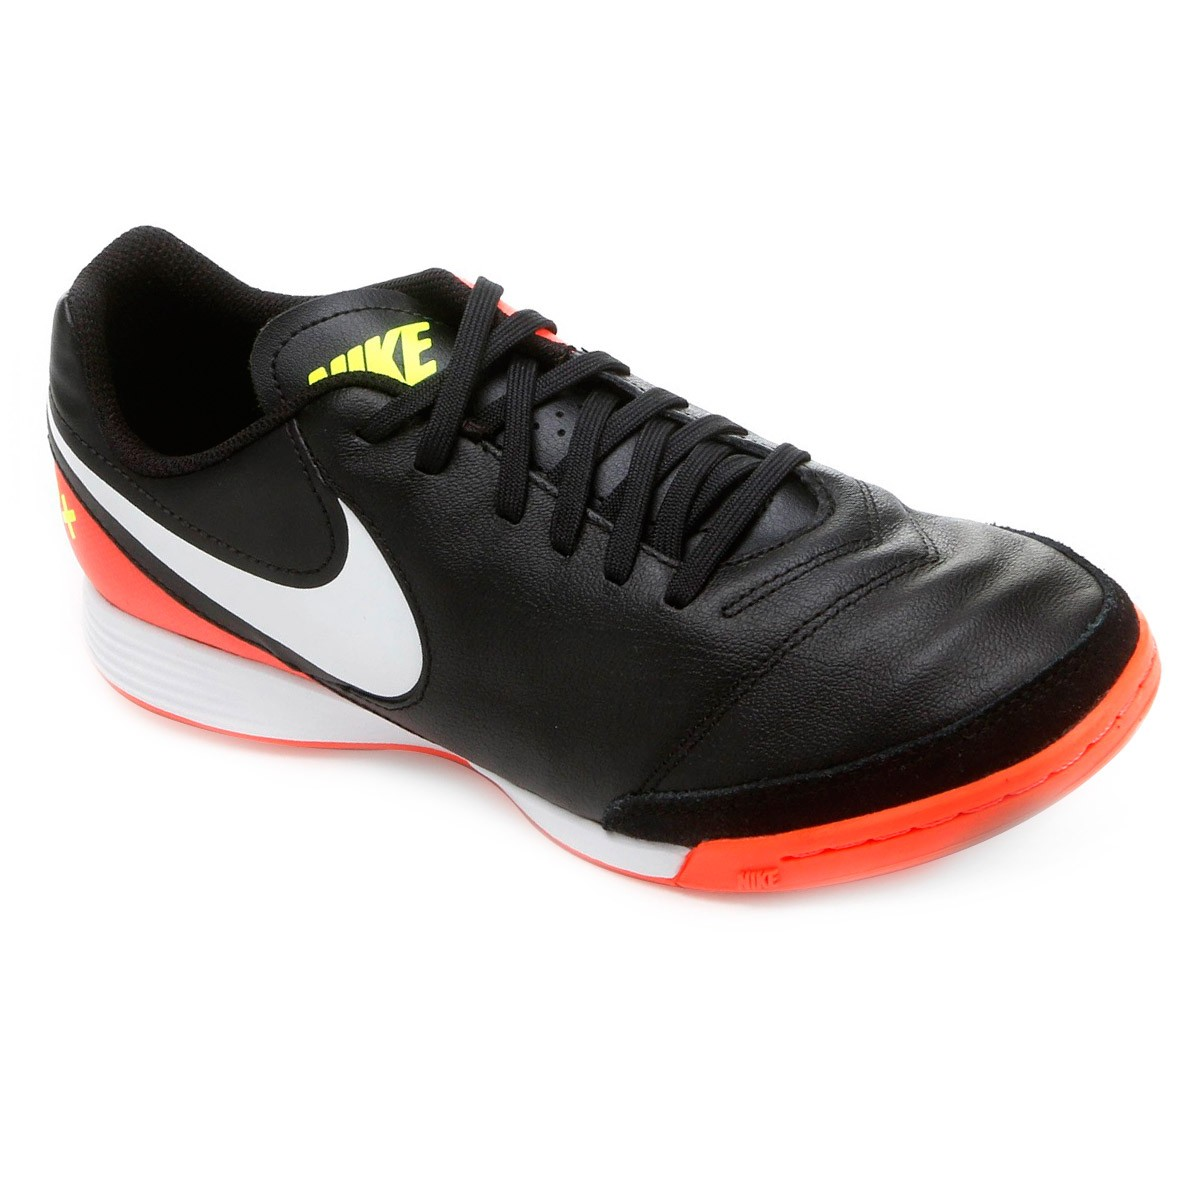 new style 46169 8422d Chuteira Nike Tiempo Genio 2 Leather IC Futsal - 819215